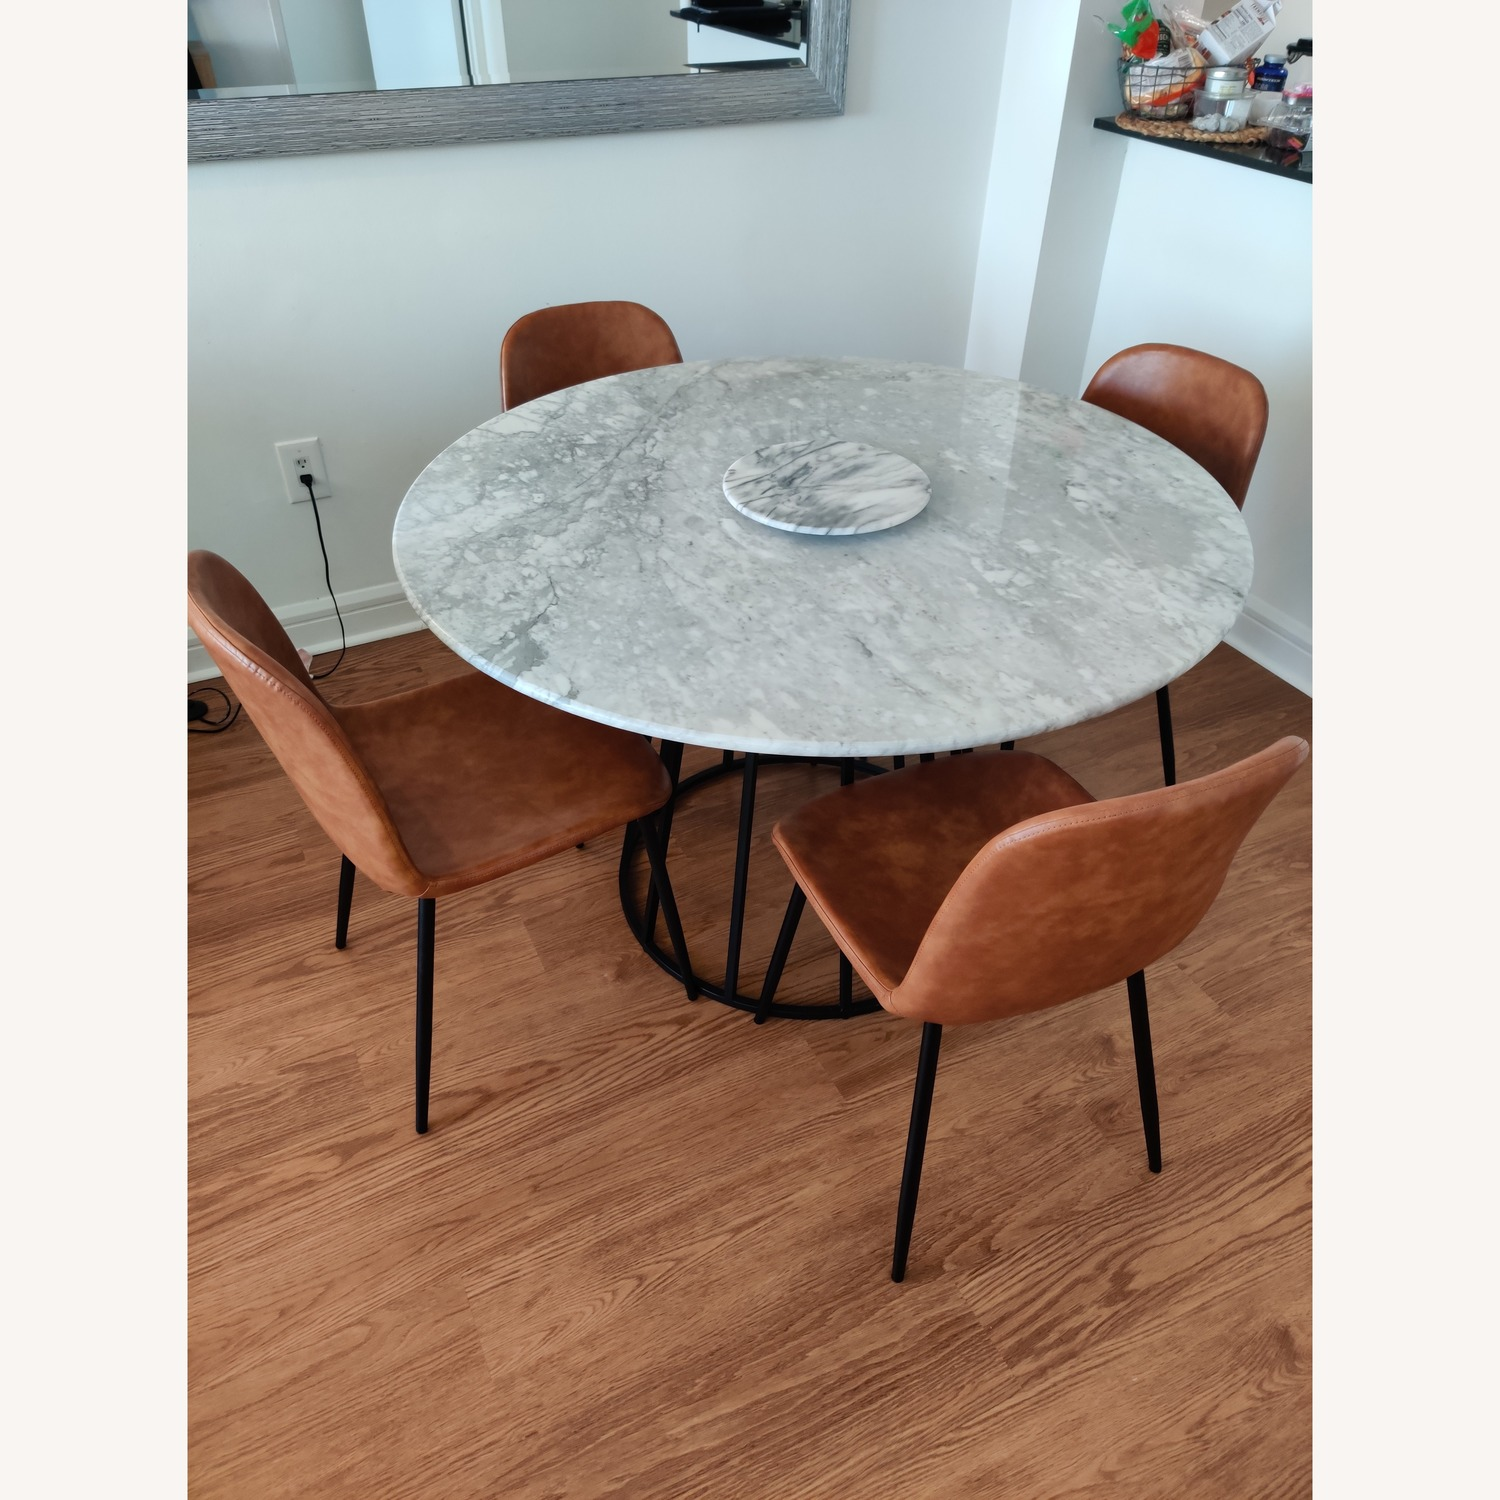 Macy's Round Marble Dining Table w/ 4 Chairs - image-1